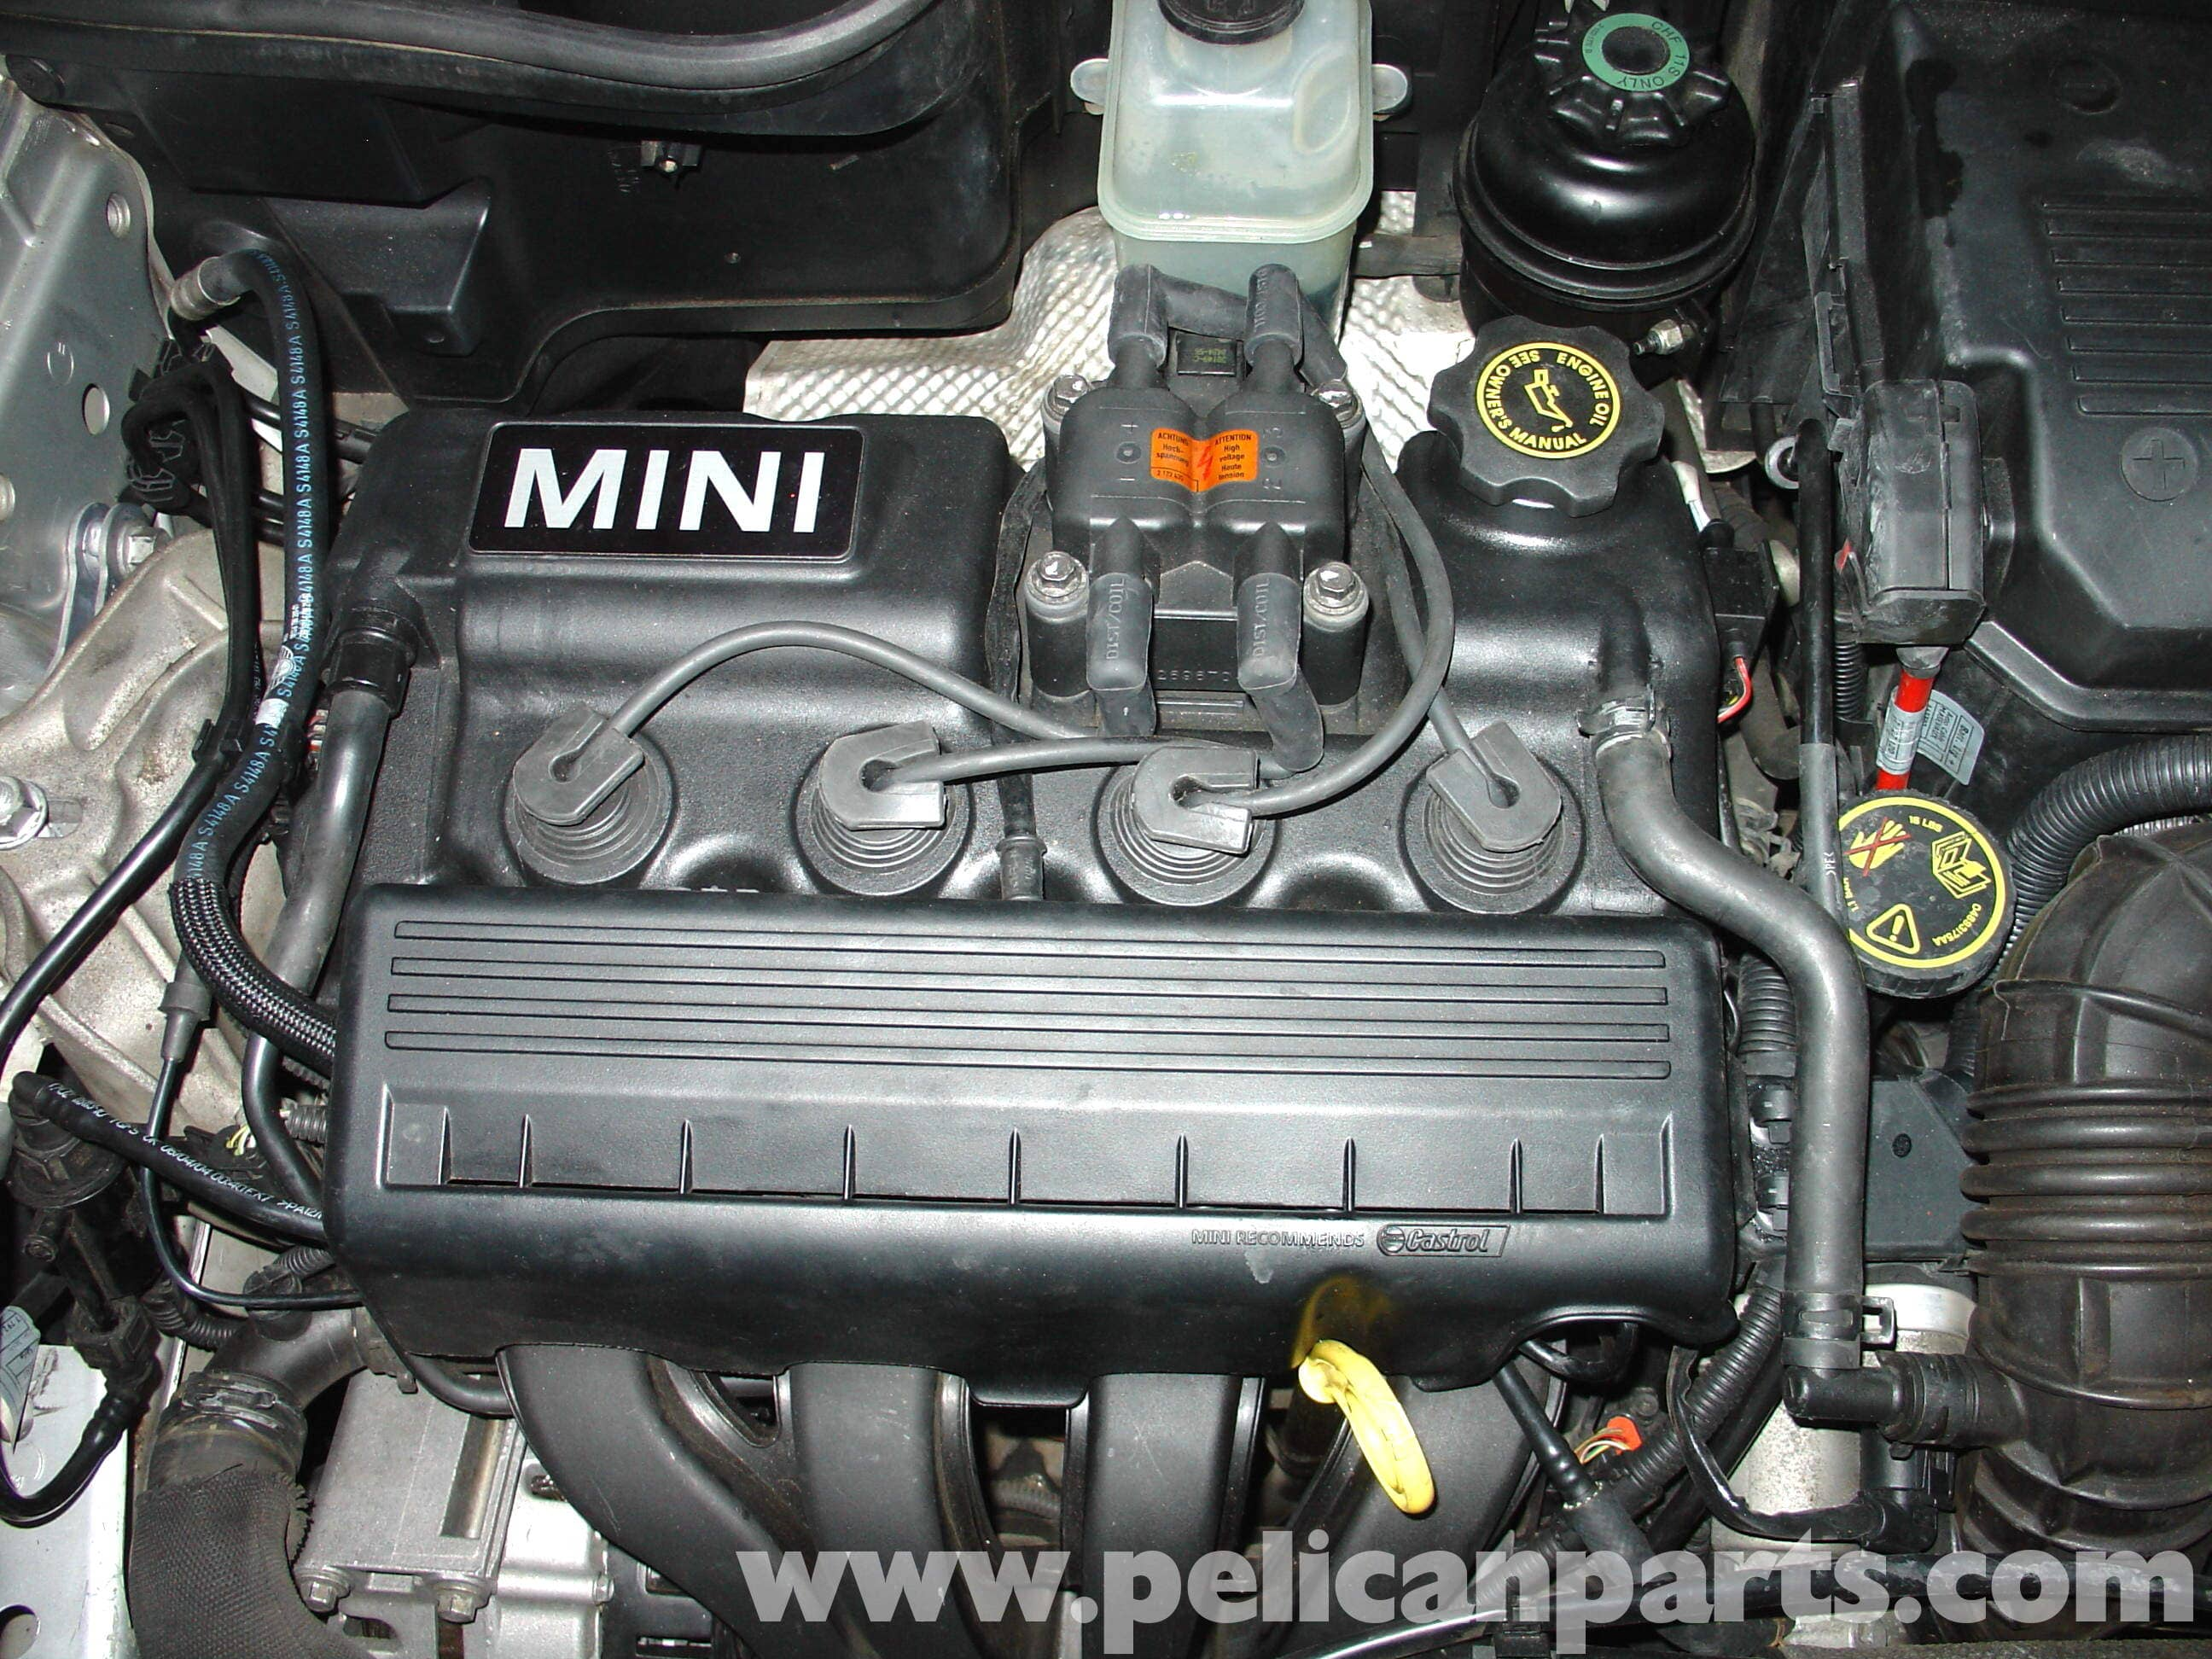 2008 mini cooper s engine diagram wiring diagram echo mini cooper fan relay location mini cooper engine diagrams wiring